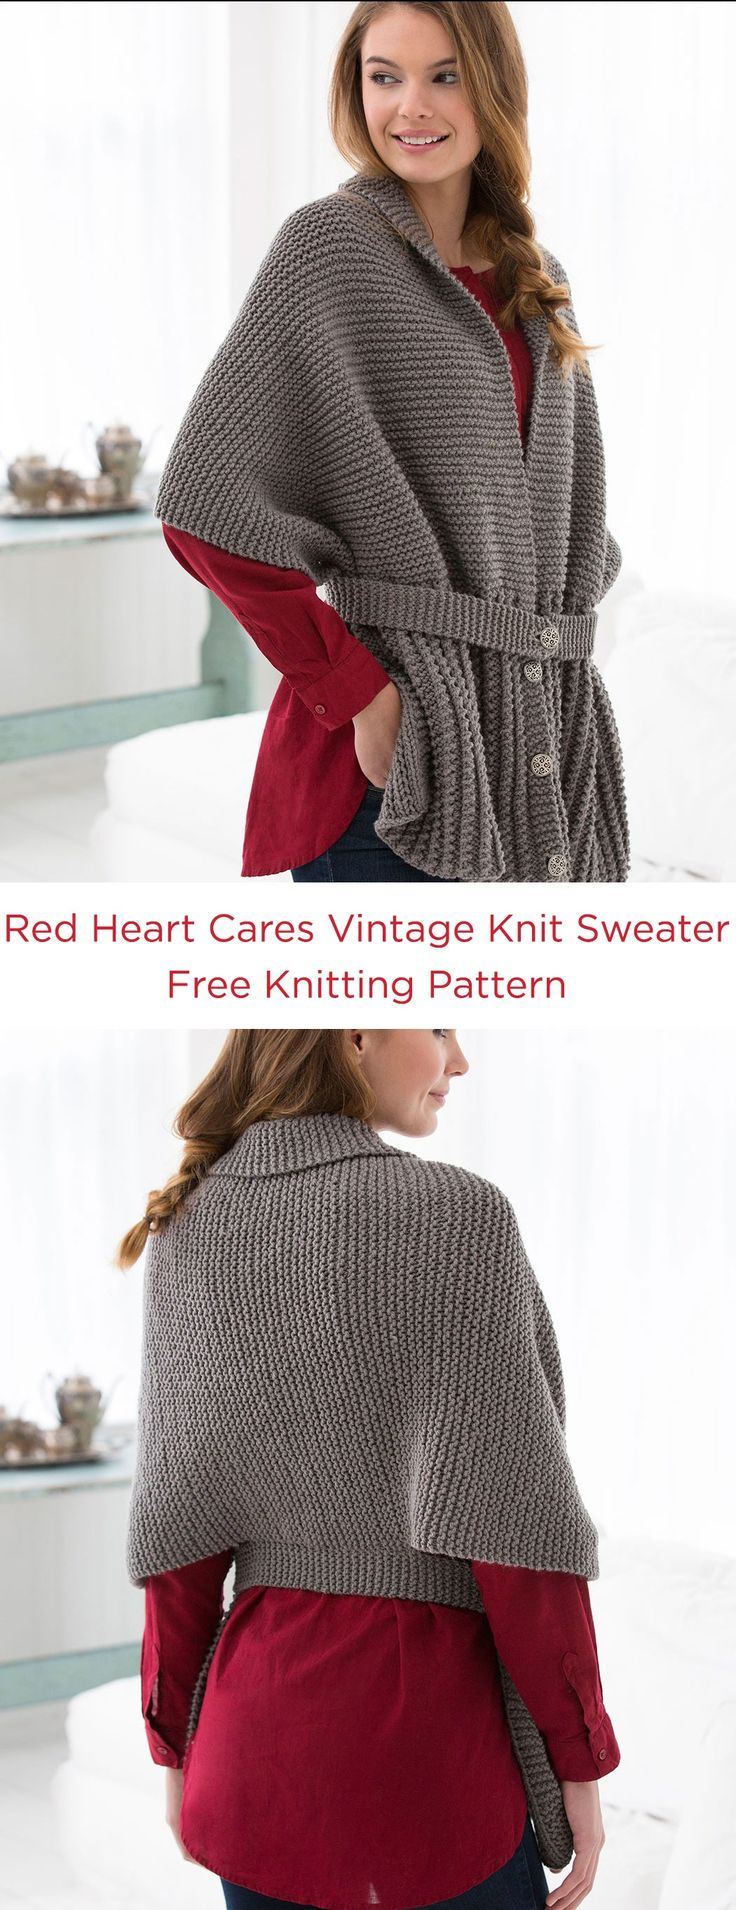 """Red Heart Cares Vintage Knit Sweater Free Knitting PAttern in Red Heart Yarns -- This modern knit wrap was actually inspired by a """"sweater-scarf"""" from 1917, in the early years that women supported the troops by working with the Red Cross. This easy to wear style is perfect for being active or relaxing."""